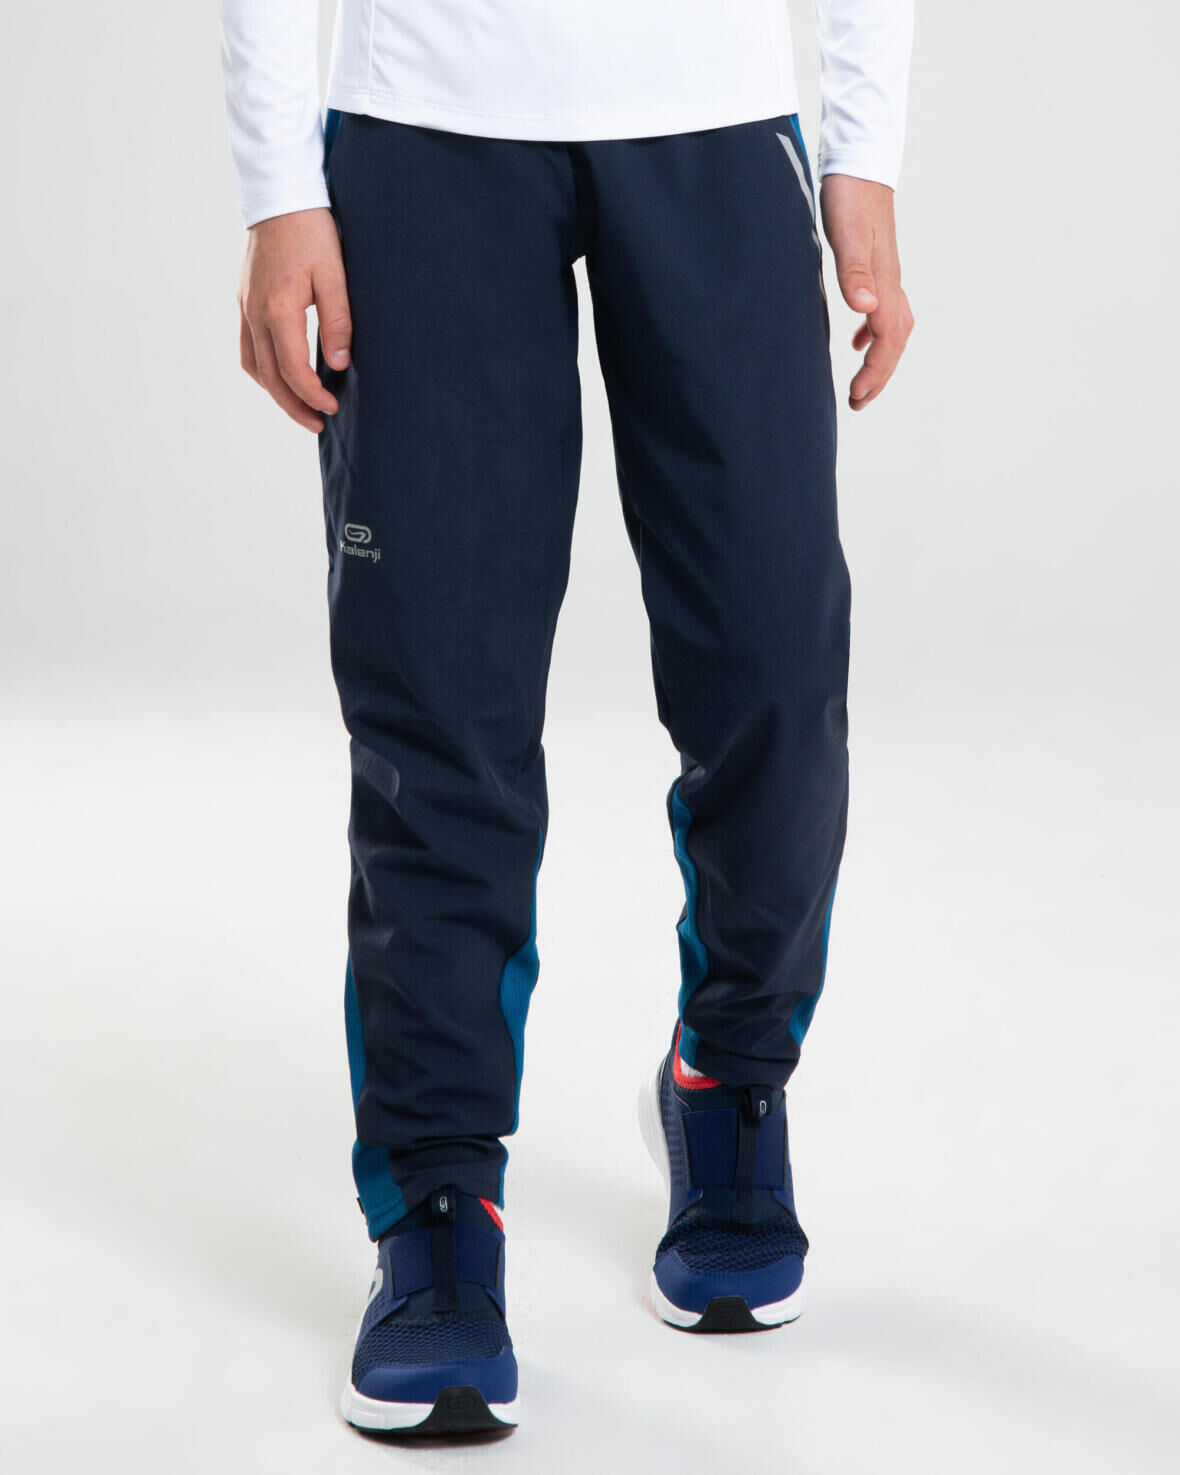 CHILDREN'S LIGHTWEIGHT TROUSERS FOR ATHLETICS OR SPORTS AT SCHOOL - NAVY BLUE